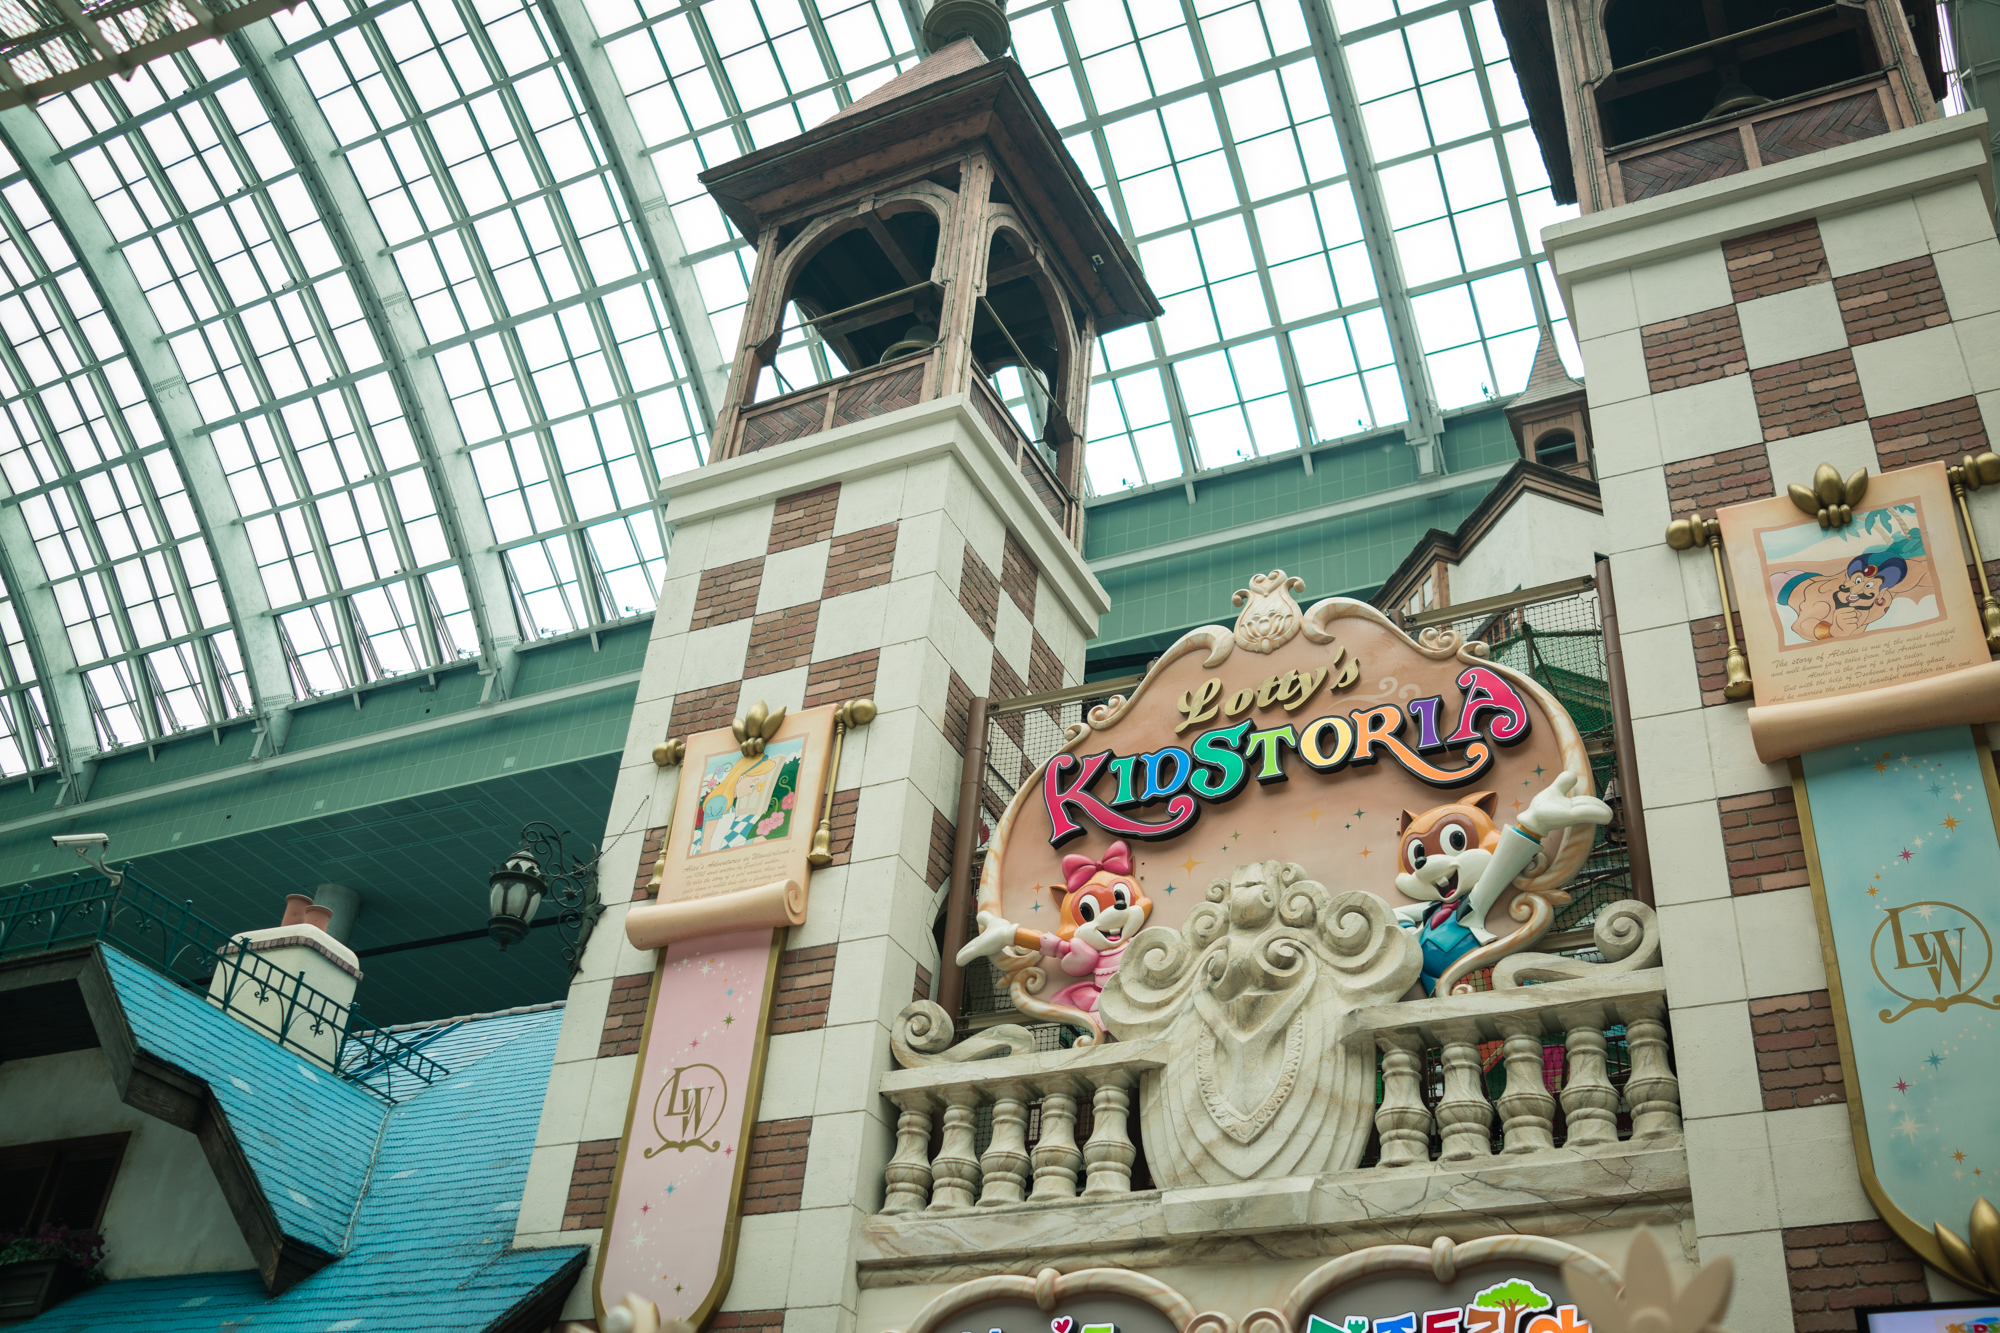 Kidstoria at Lotte World